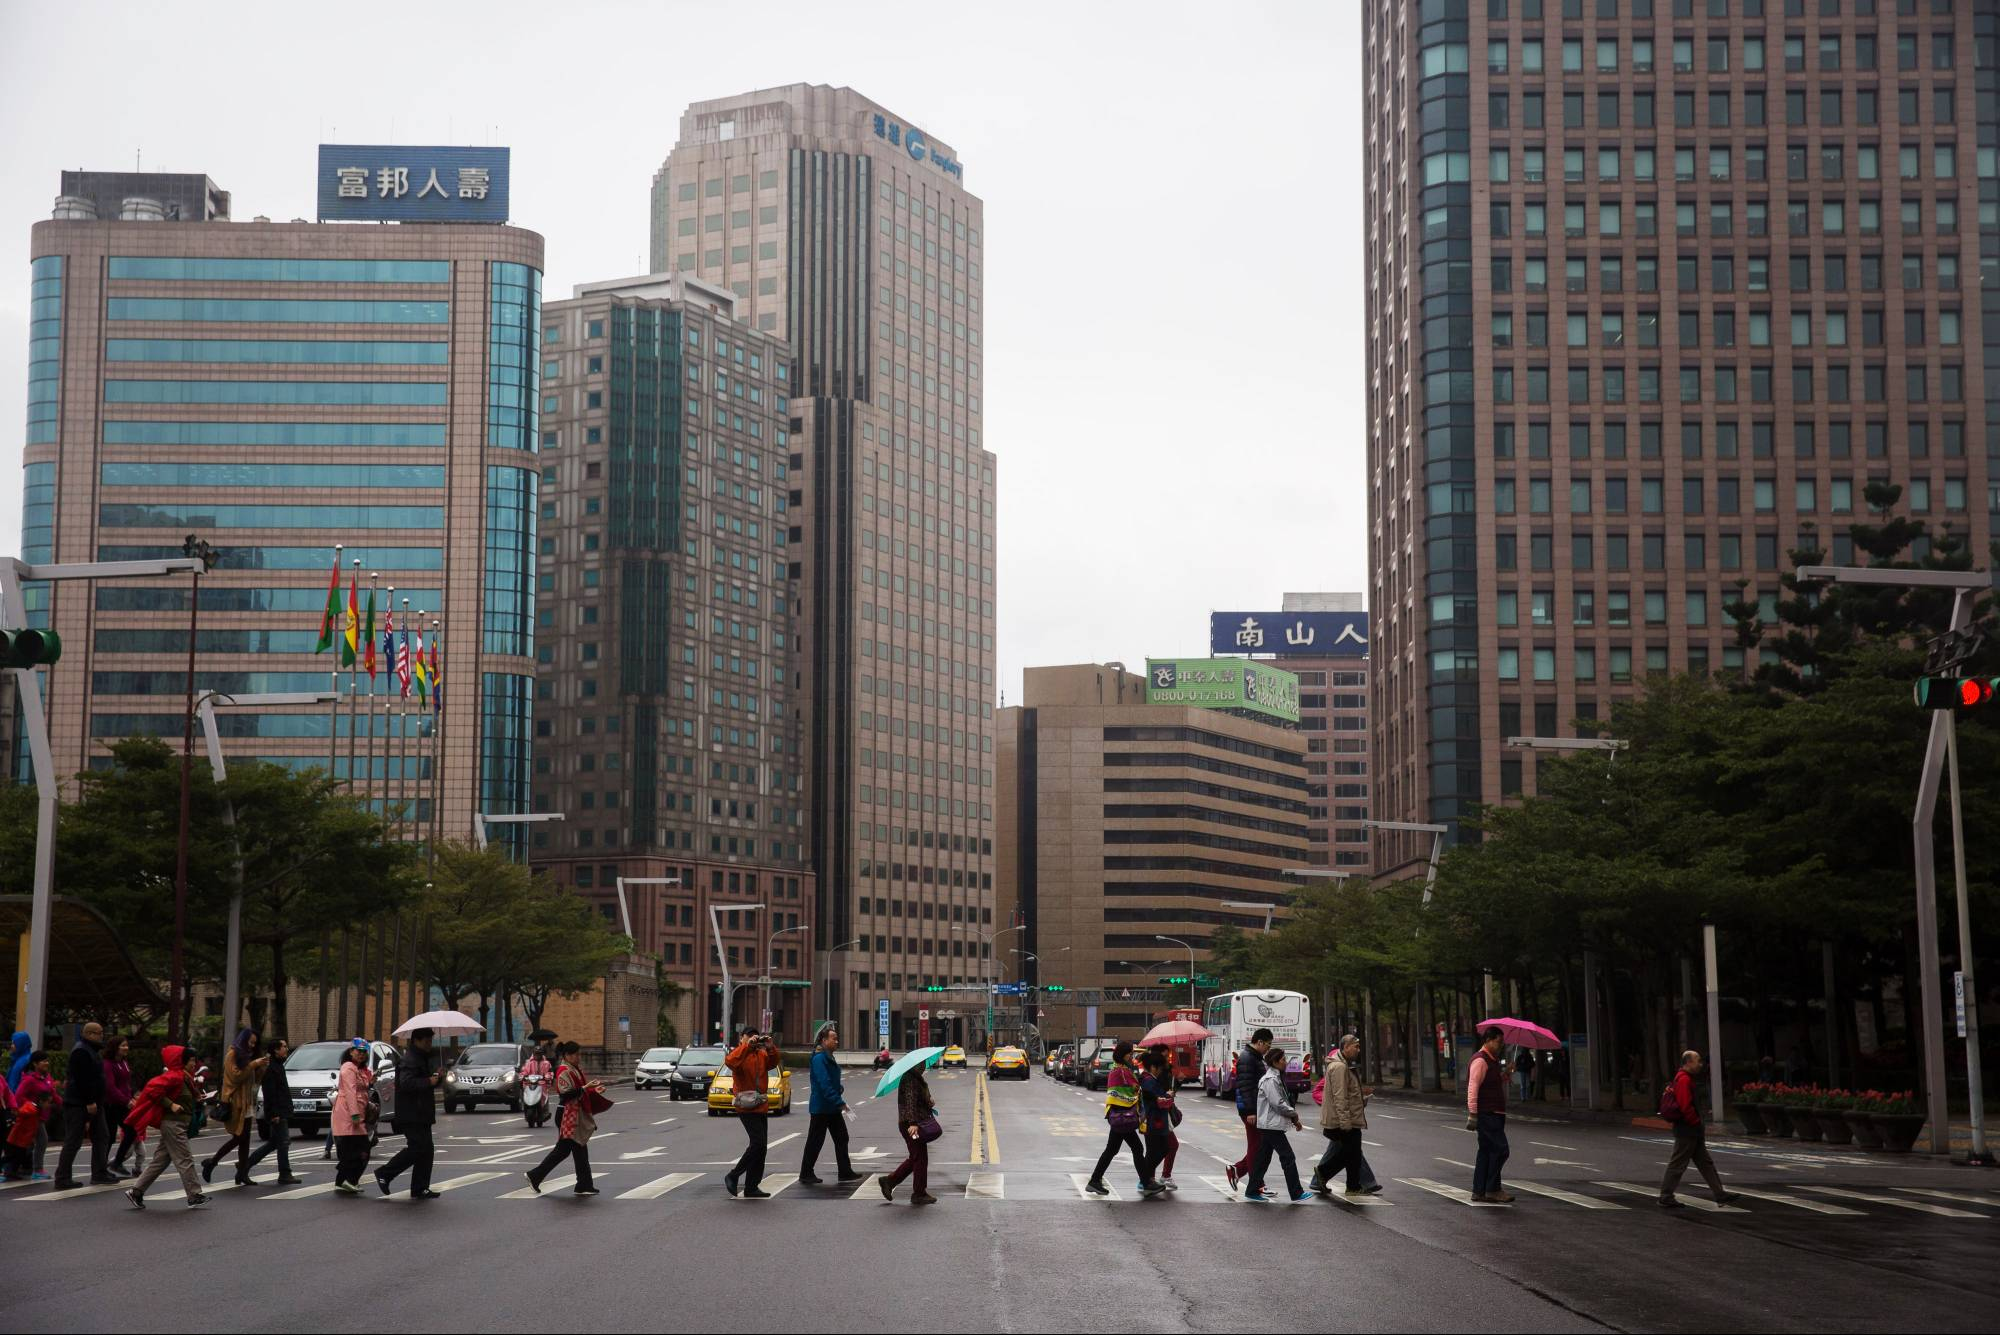 Pedestrians holding umbrellas cross a road near commercial buildings in Taipei in January, 2016. | BLOOMBERG